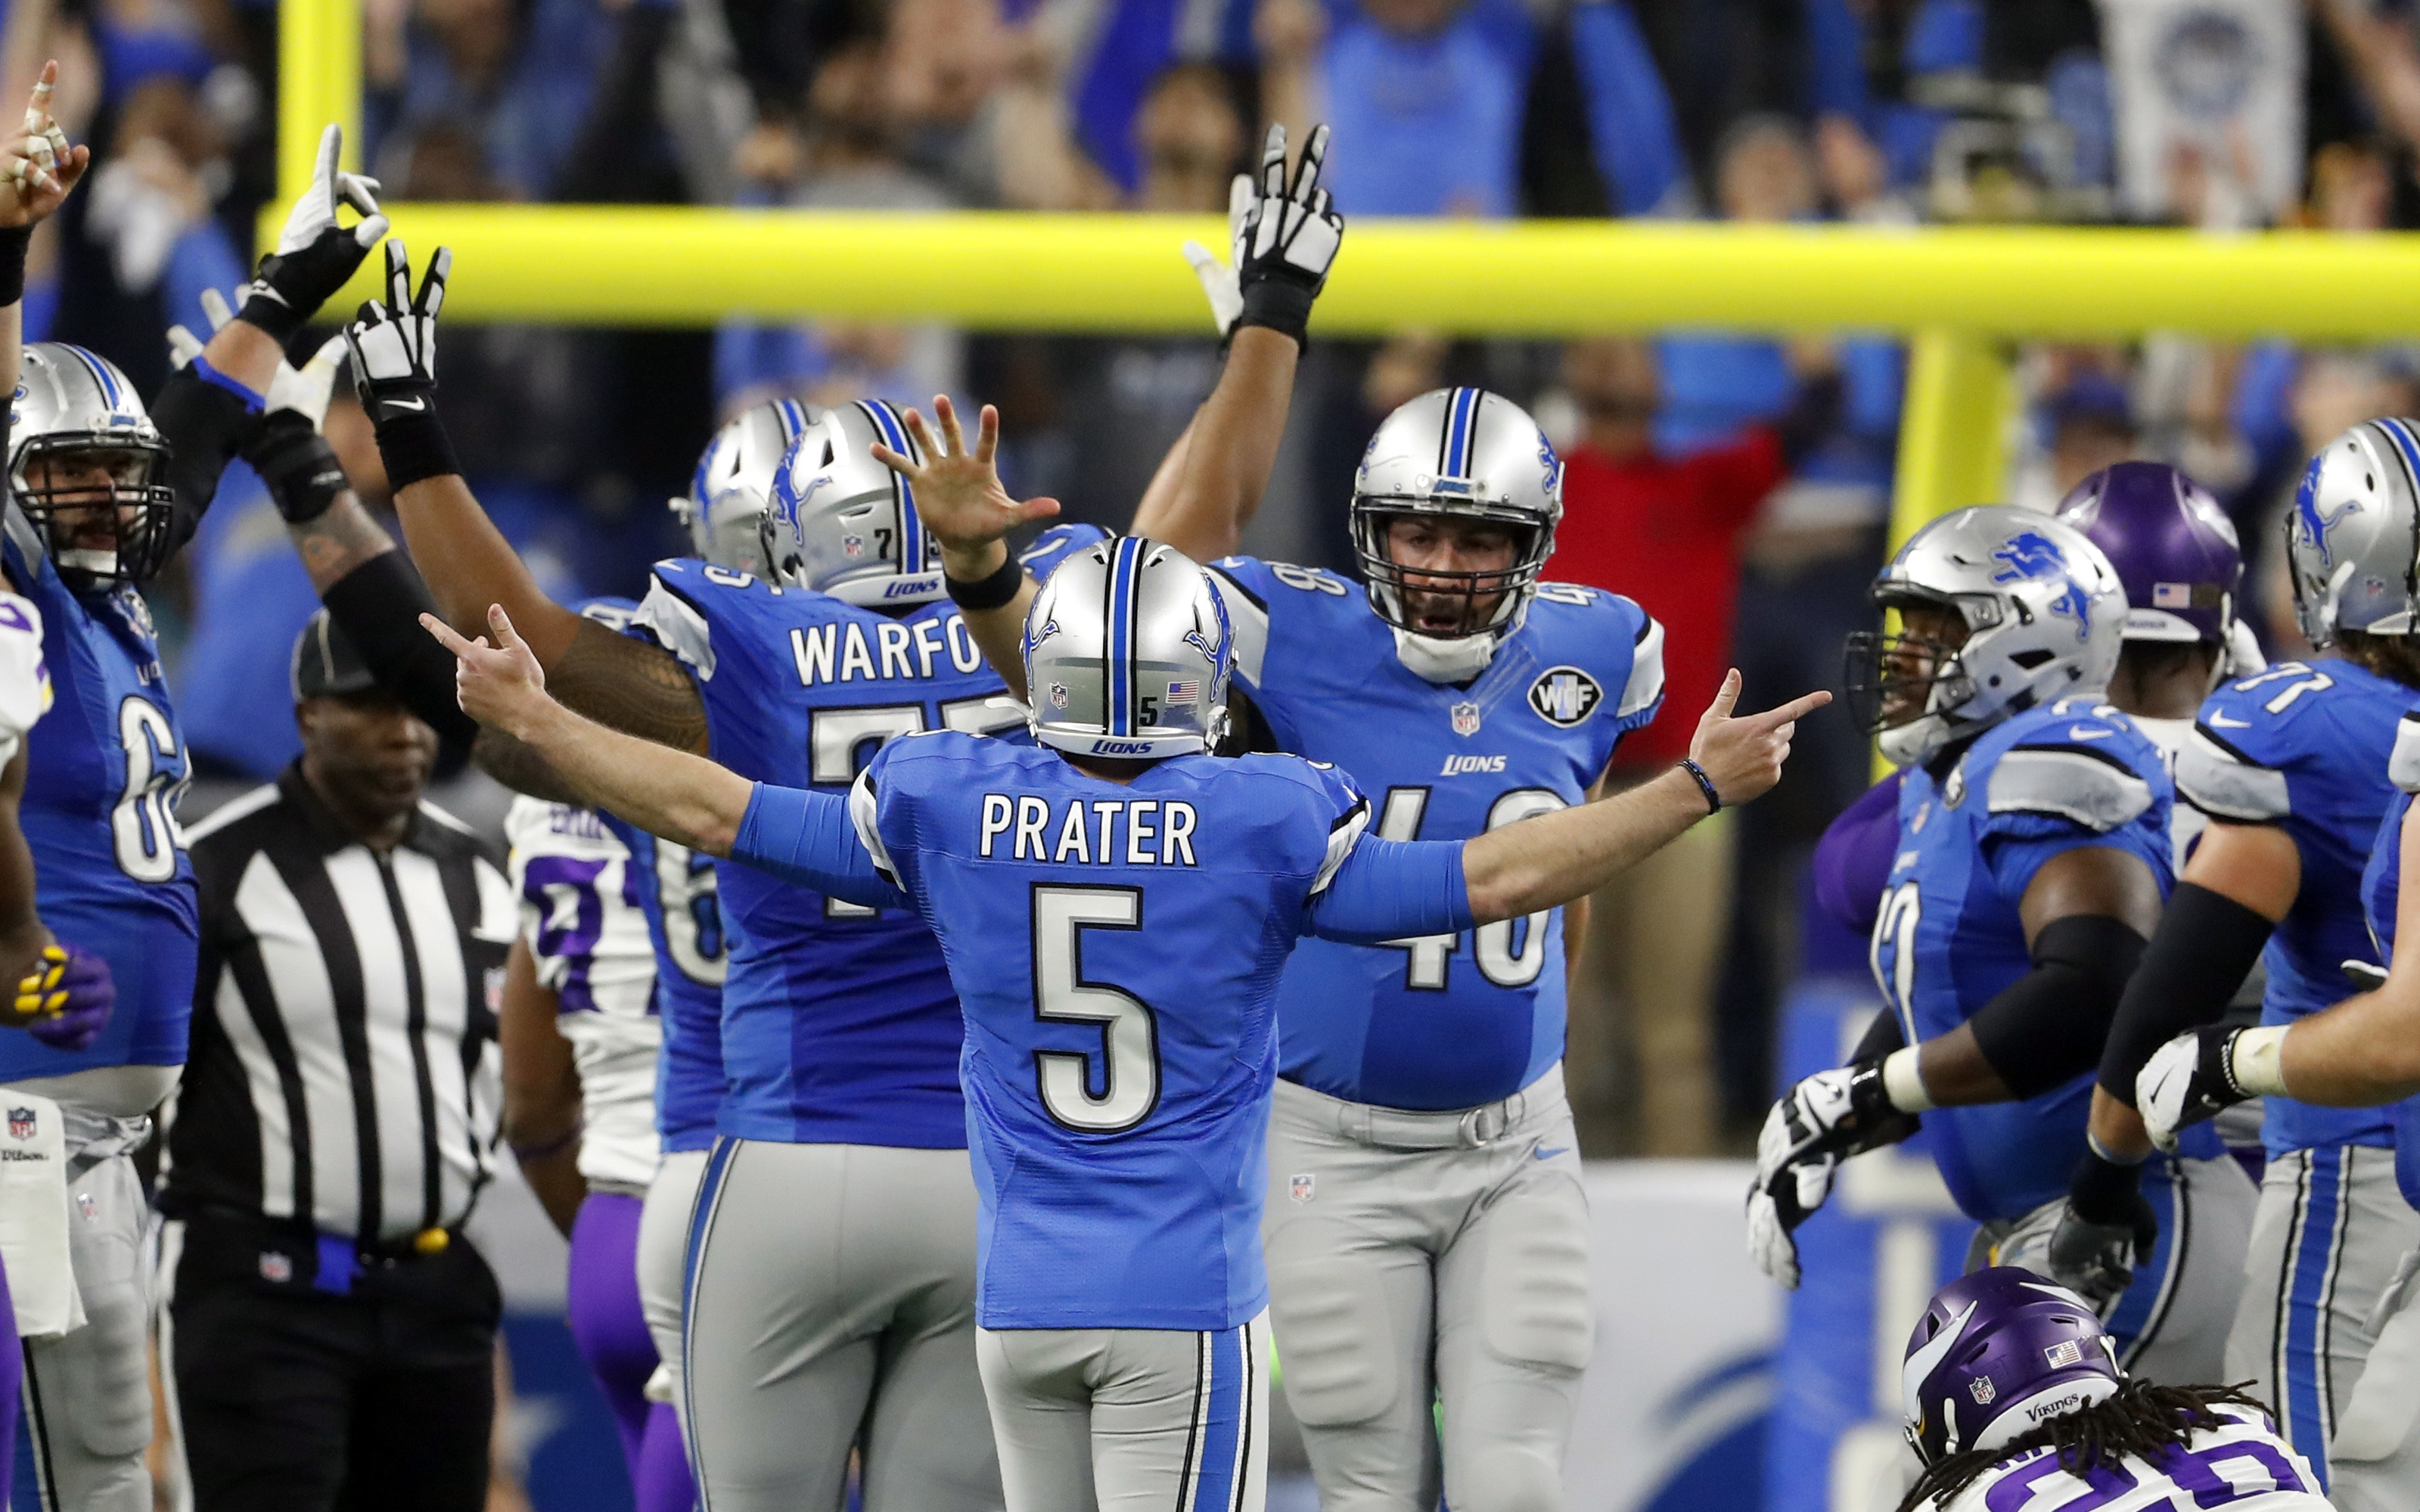 Detroit Lions kicker Matt Prater (5) is congratulated after making a 40-yard winning field goal during the second half of an NFL football game against the Minnesota Vikings, Thursday, Nov. 24, 2016, in Detroit. (AP Photo/Paul Sancya)